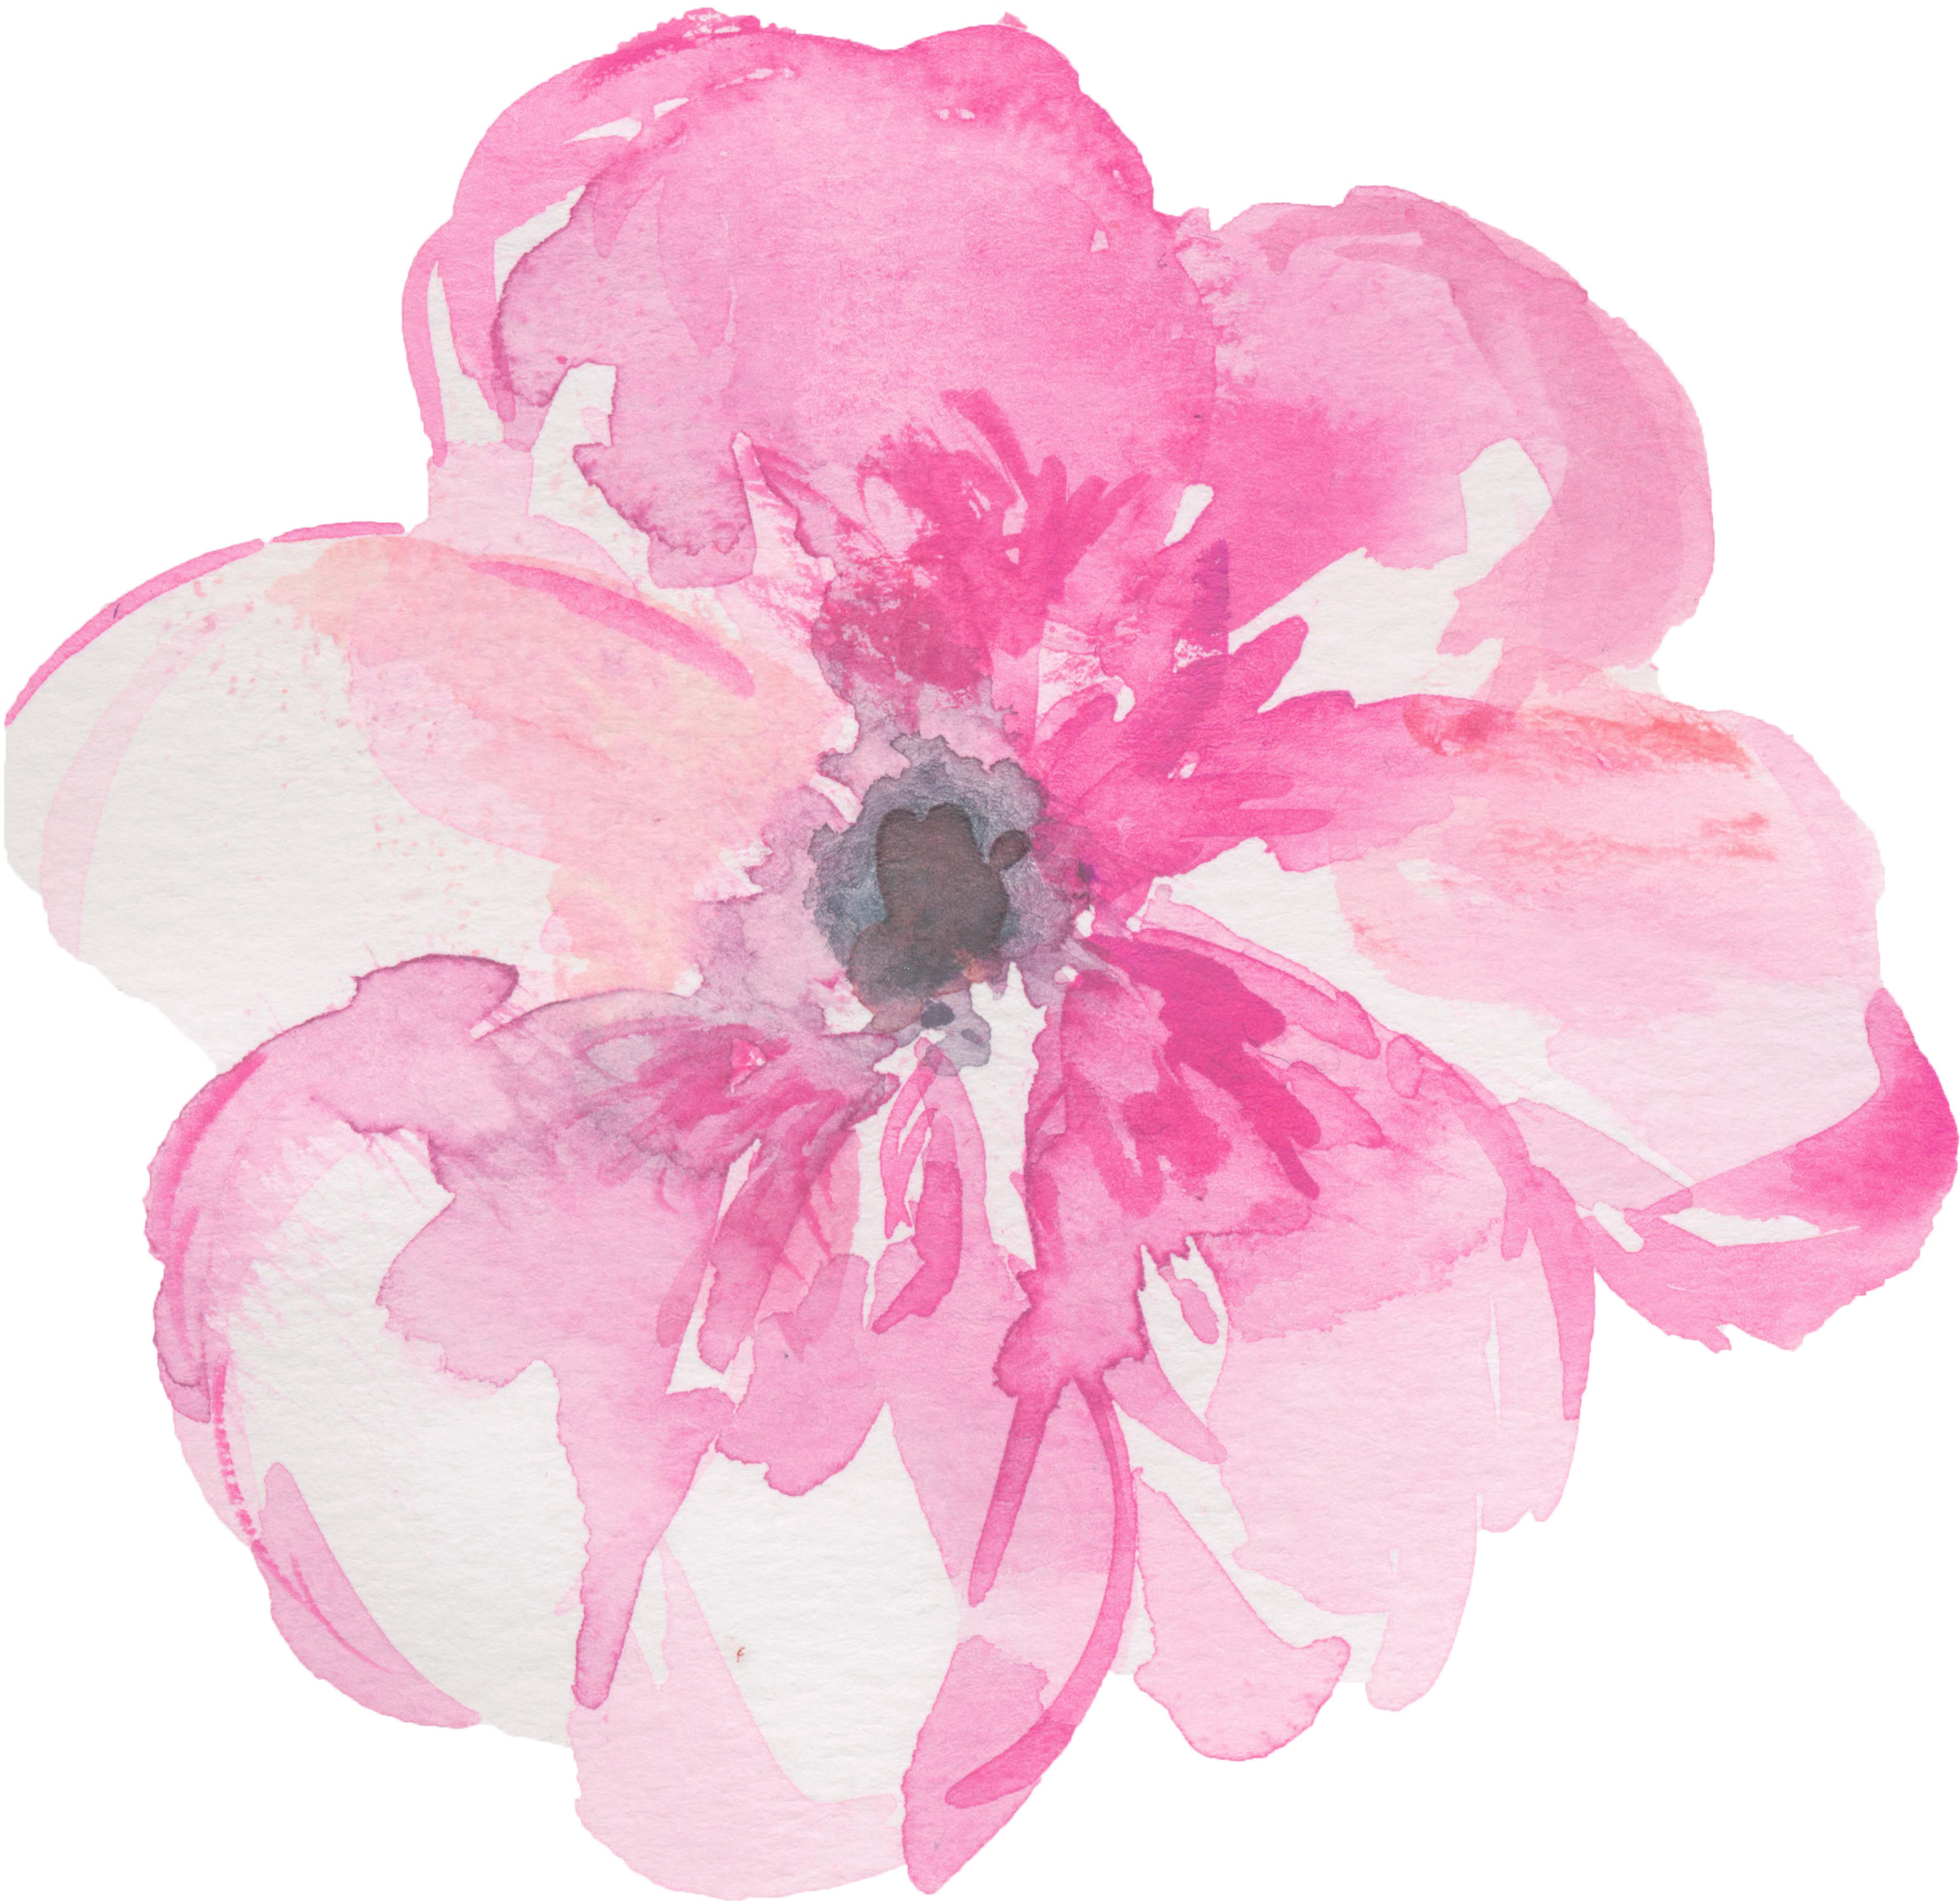 Watercolor clipart png. Watercolour flowers painting clip